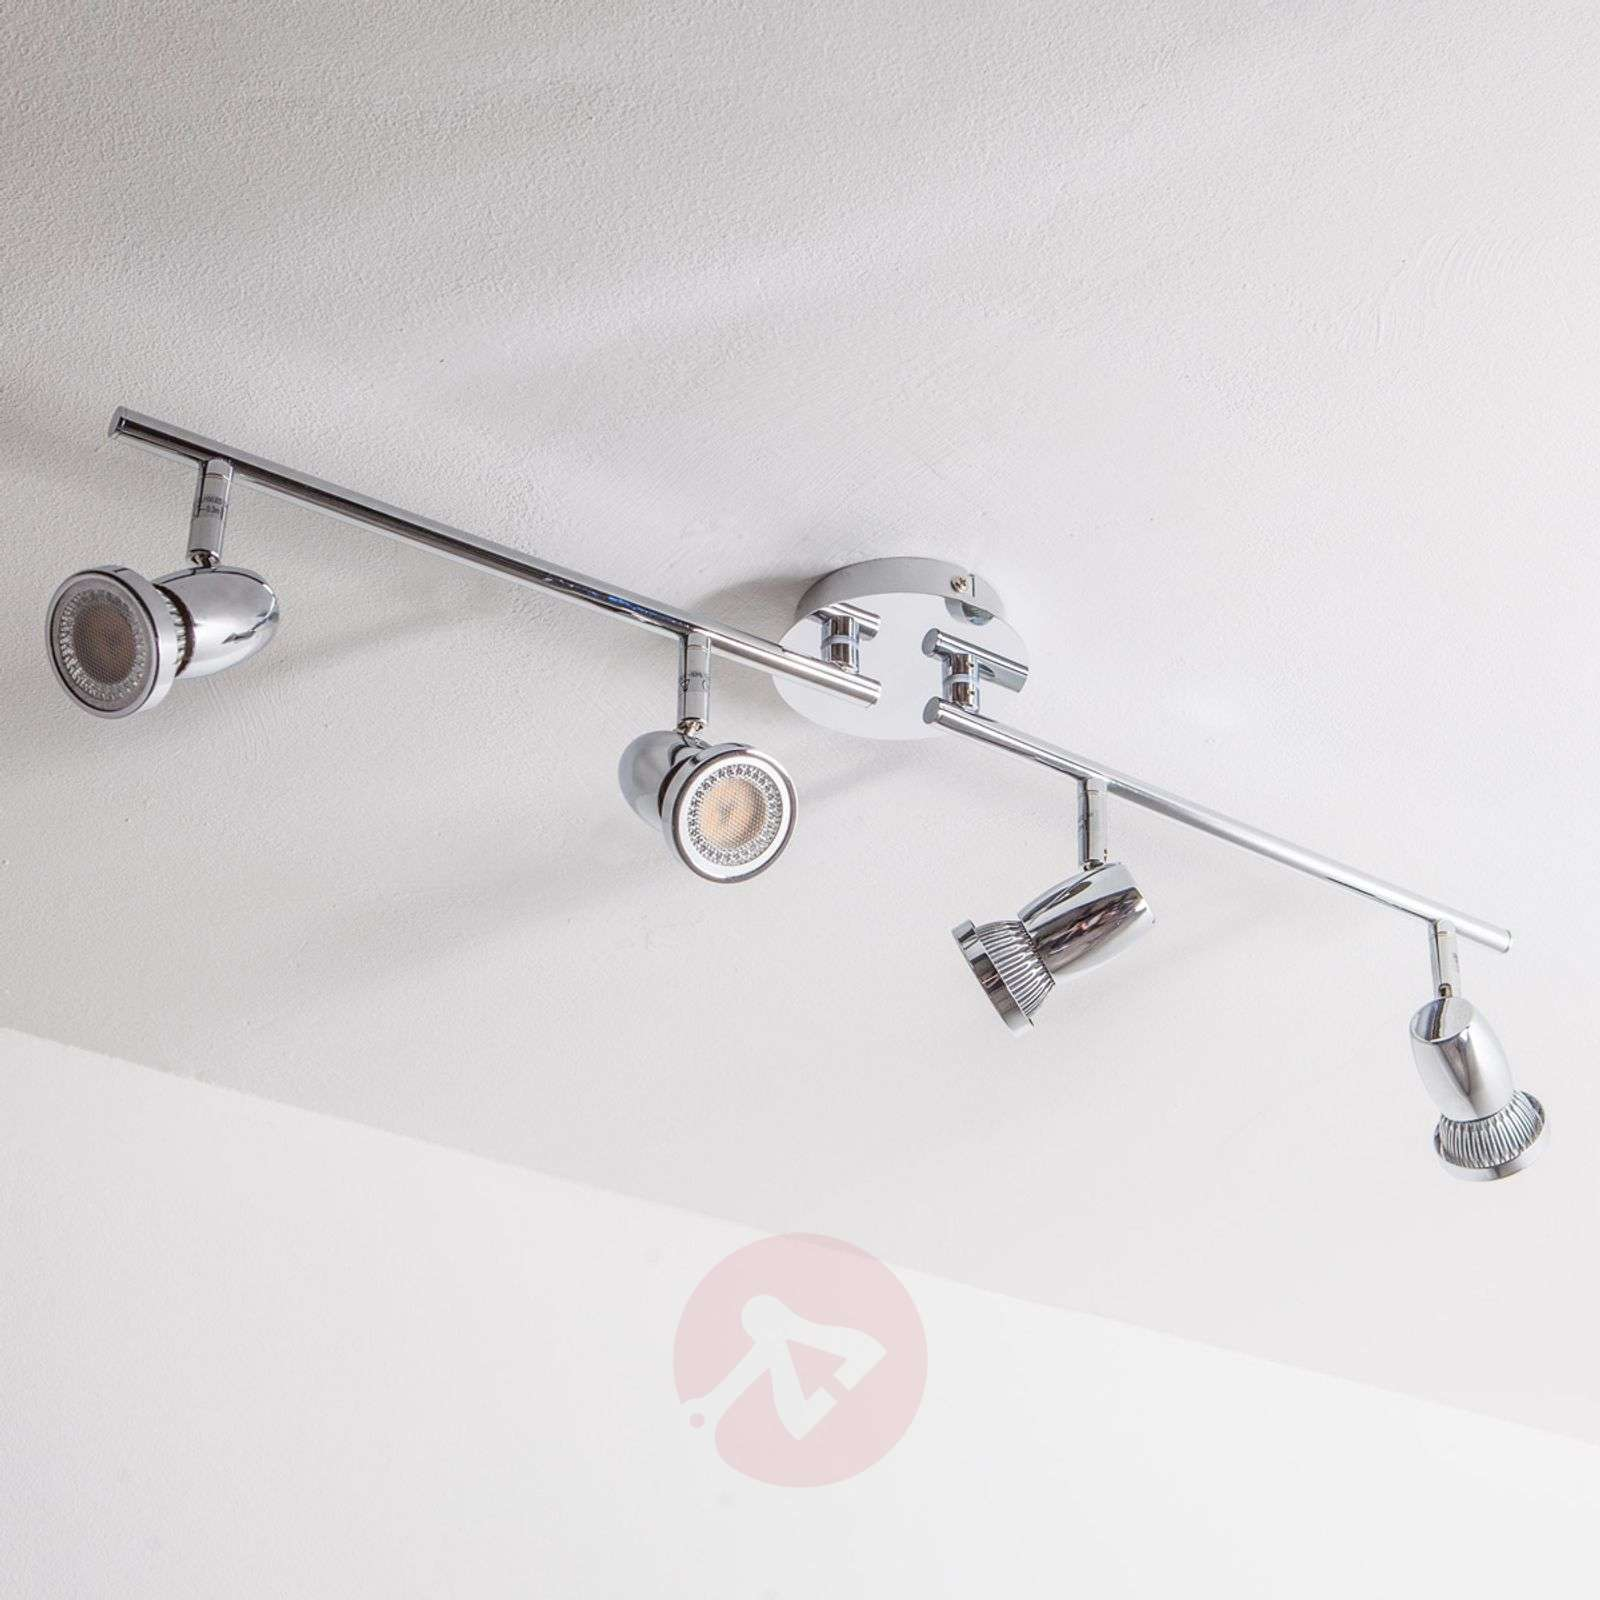 4-bulb GU10 LED ceiling lamp Arminius-9950373-01